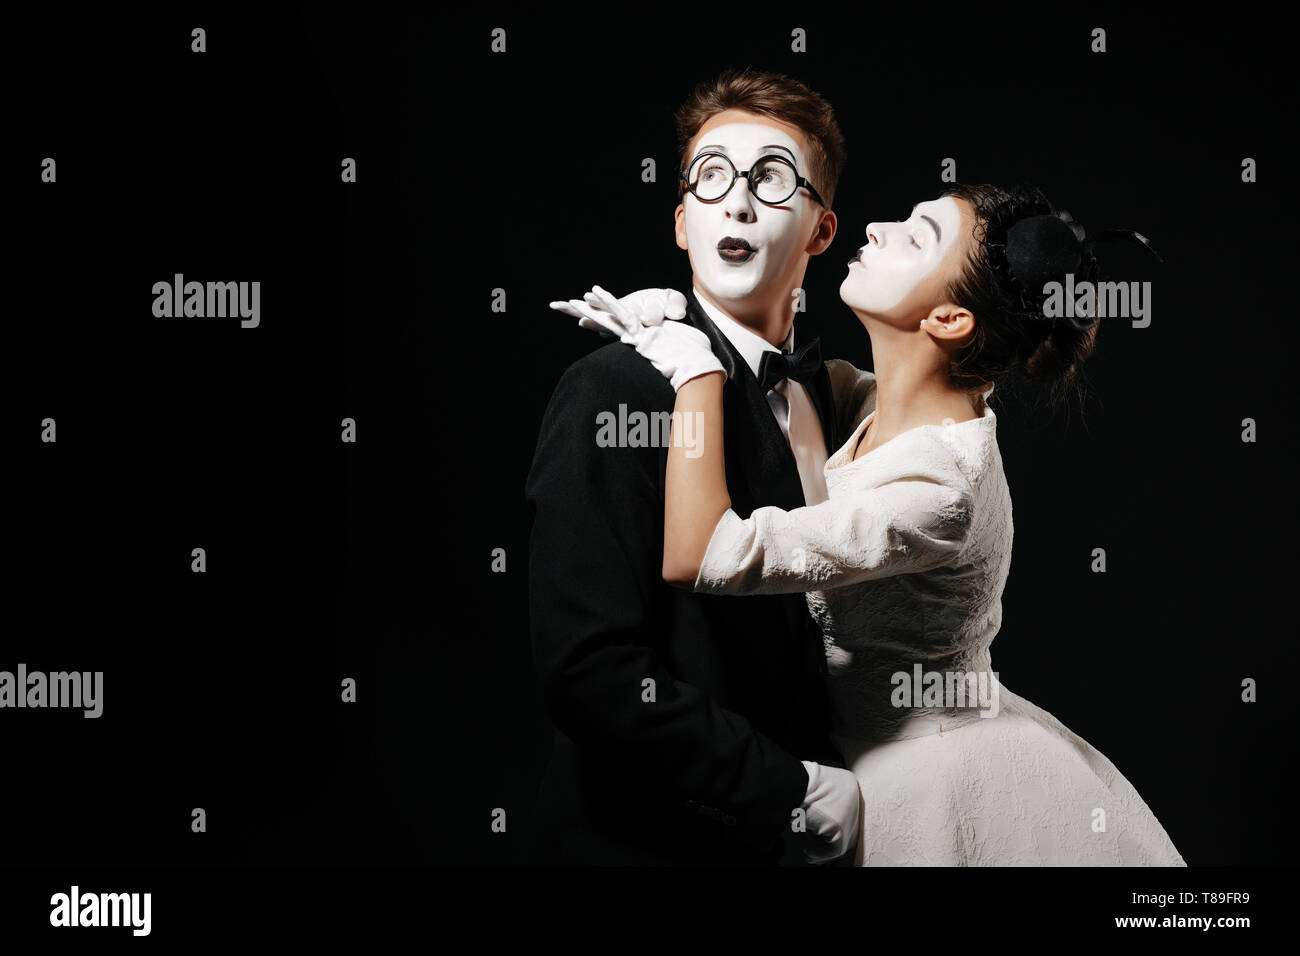 portrait of couple mime on black background. woman in white dress kissing man in tuxedo and glasses - Stock Image